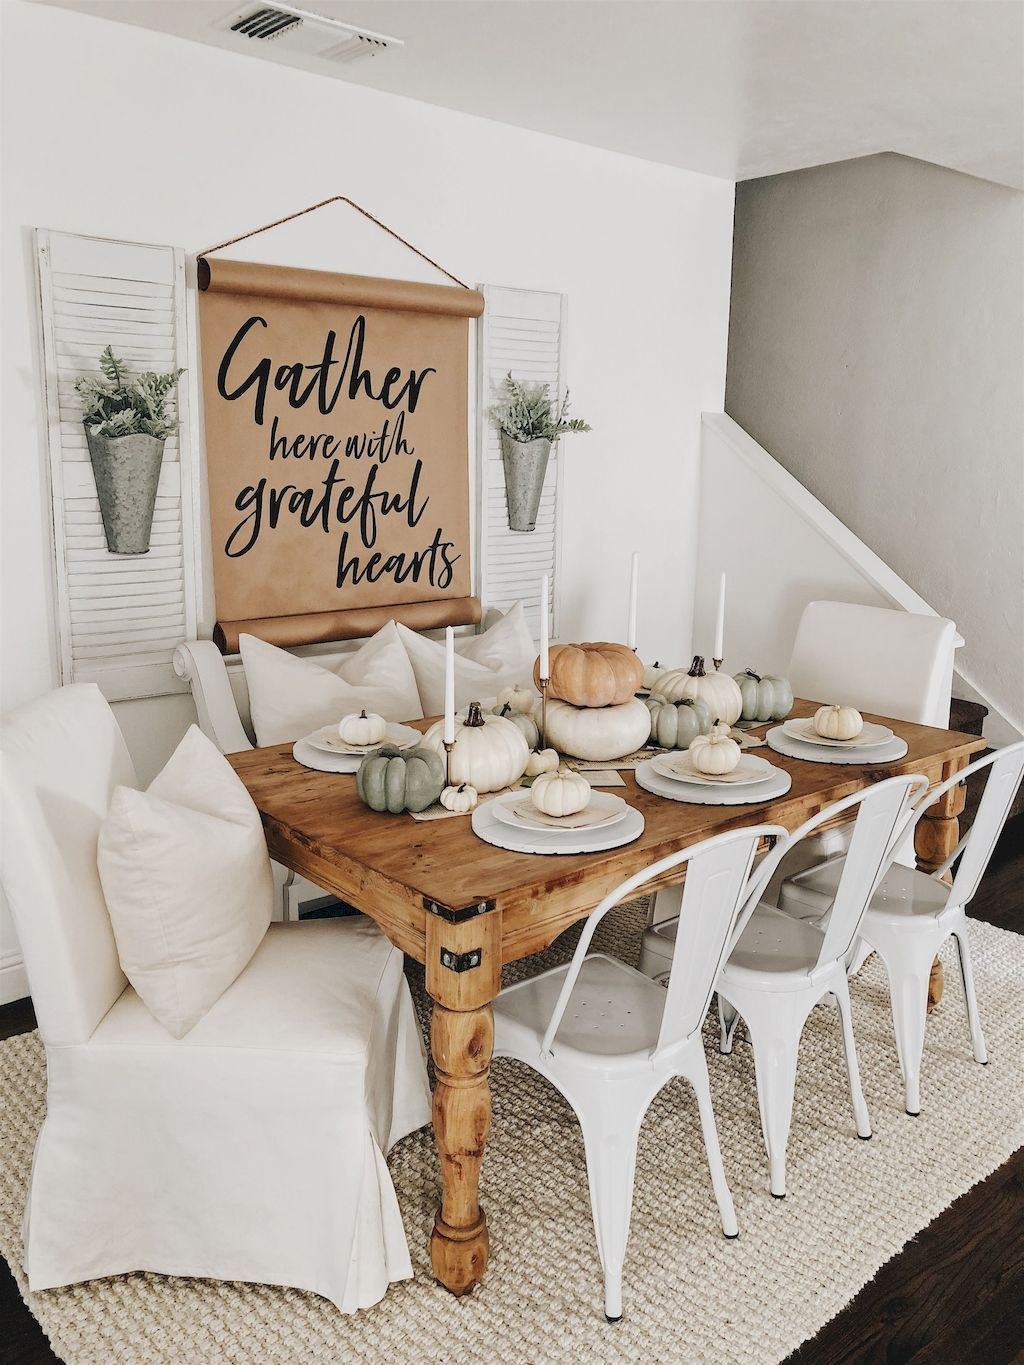 Dining Room Inspiration And Prepare To Be Delighted By Some Of The Most Iconic Farmhouse Style Dining Room Dining Room Wall Decor Farmhouse Dining Rooms Decor